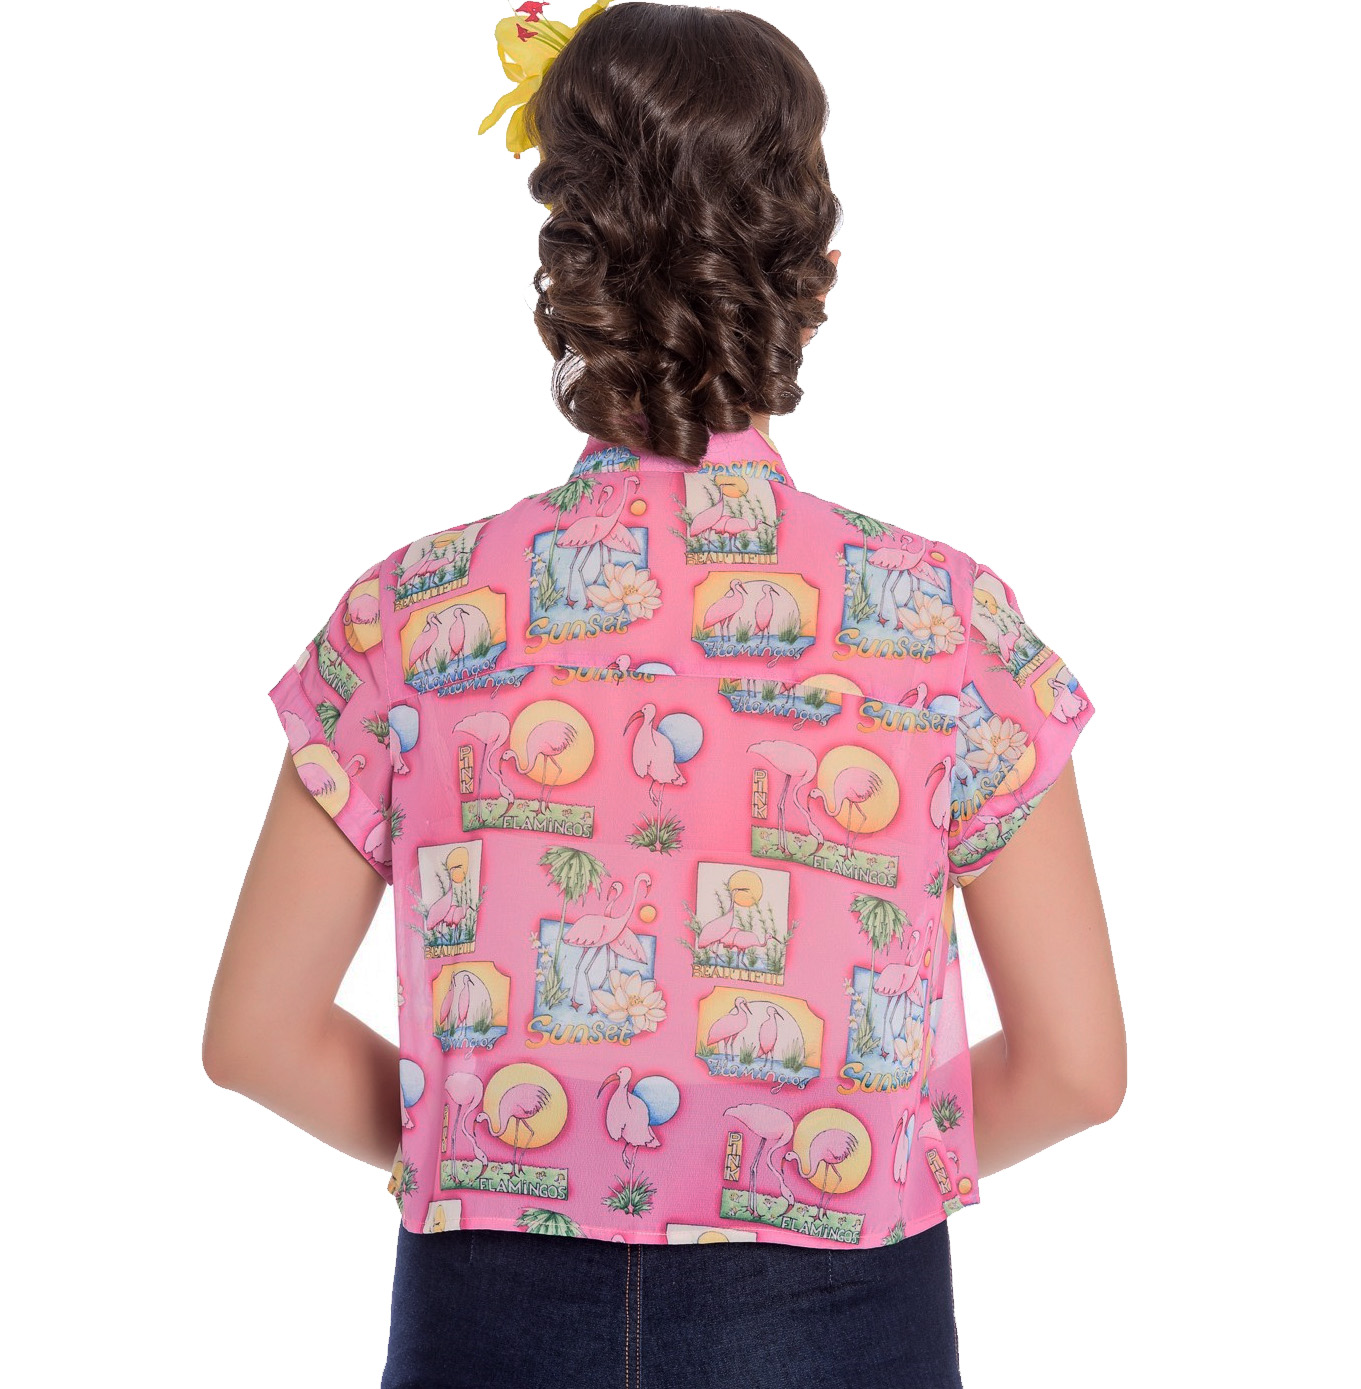 Hell-Bunny-50s-Retro-Top-Pink-Flamingo-MAXINE-Cropped-Blouse-Shirt-All-Sizes thumbnail 29